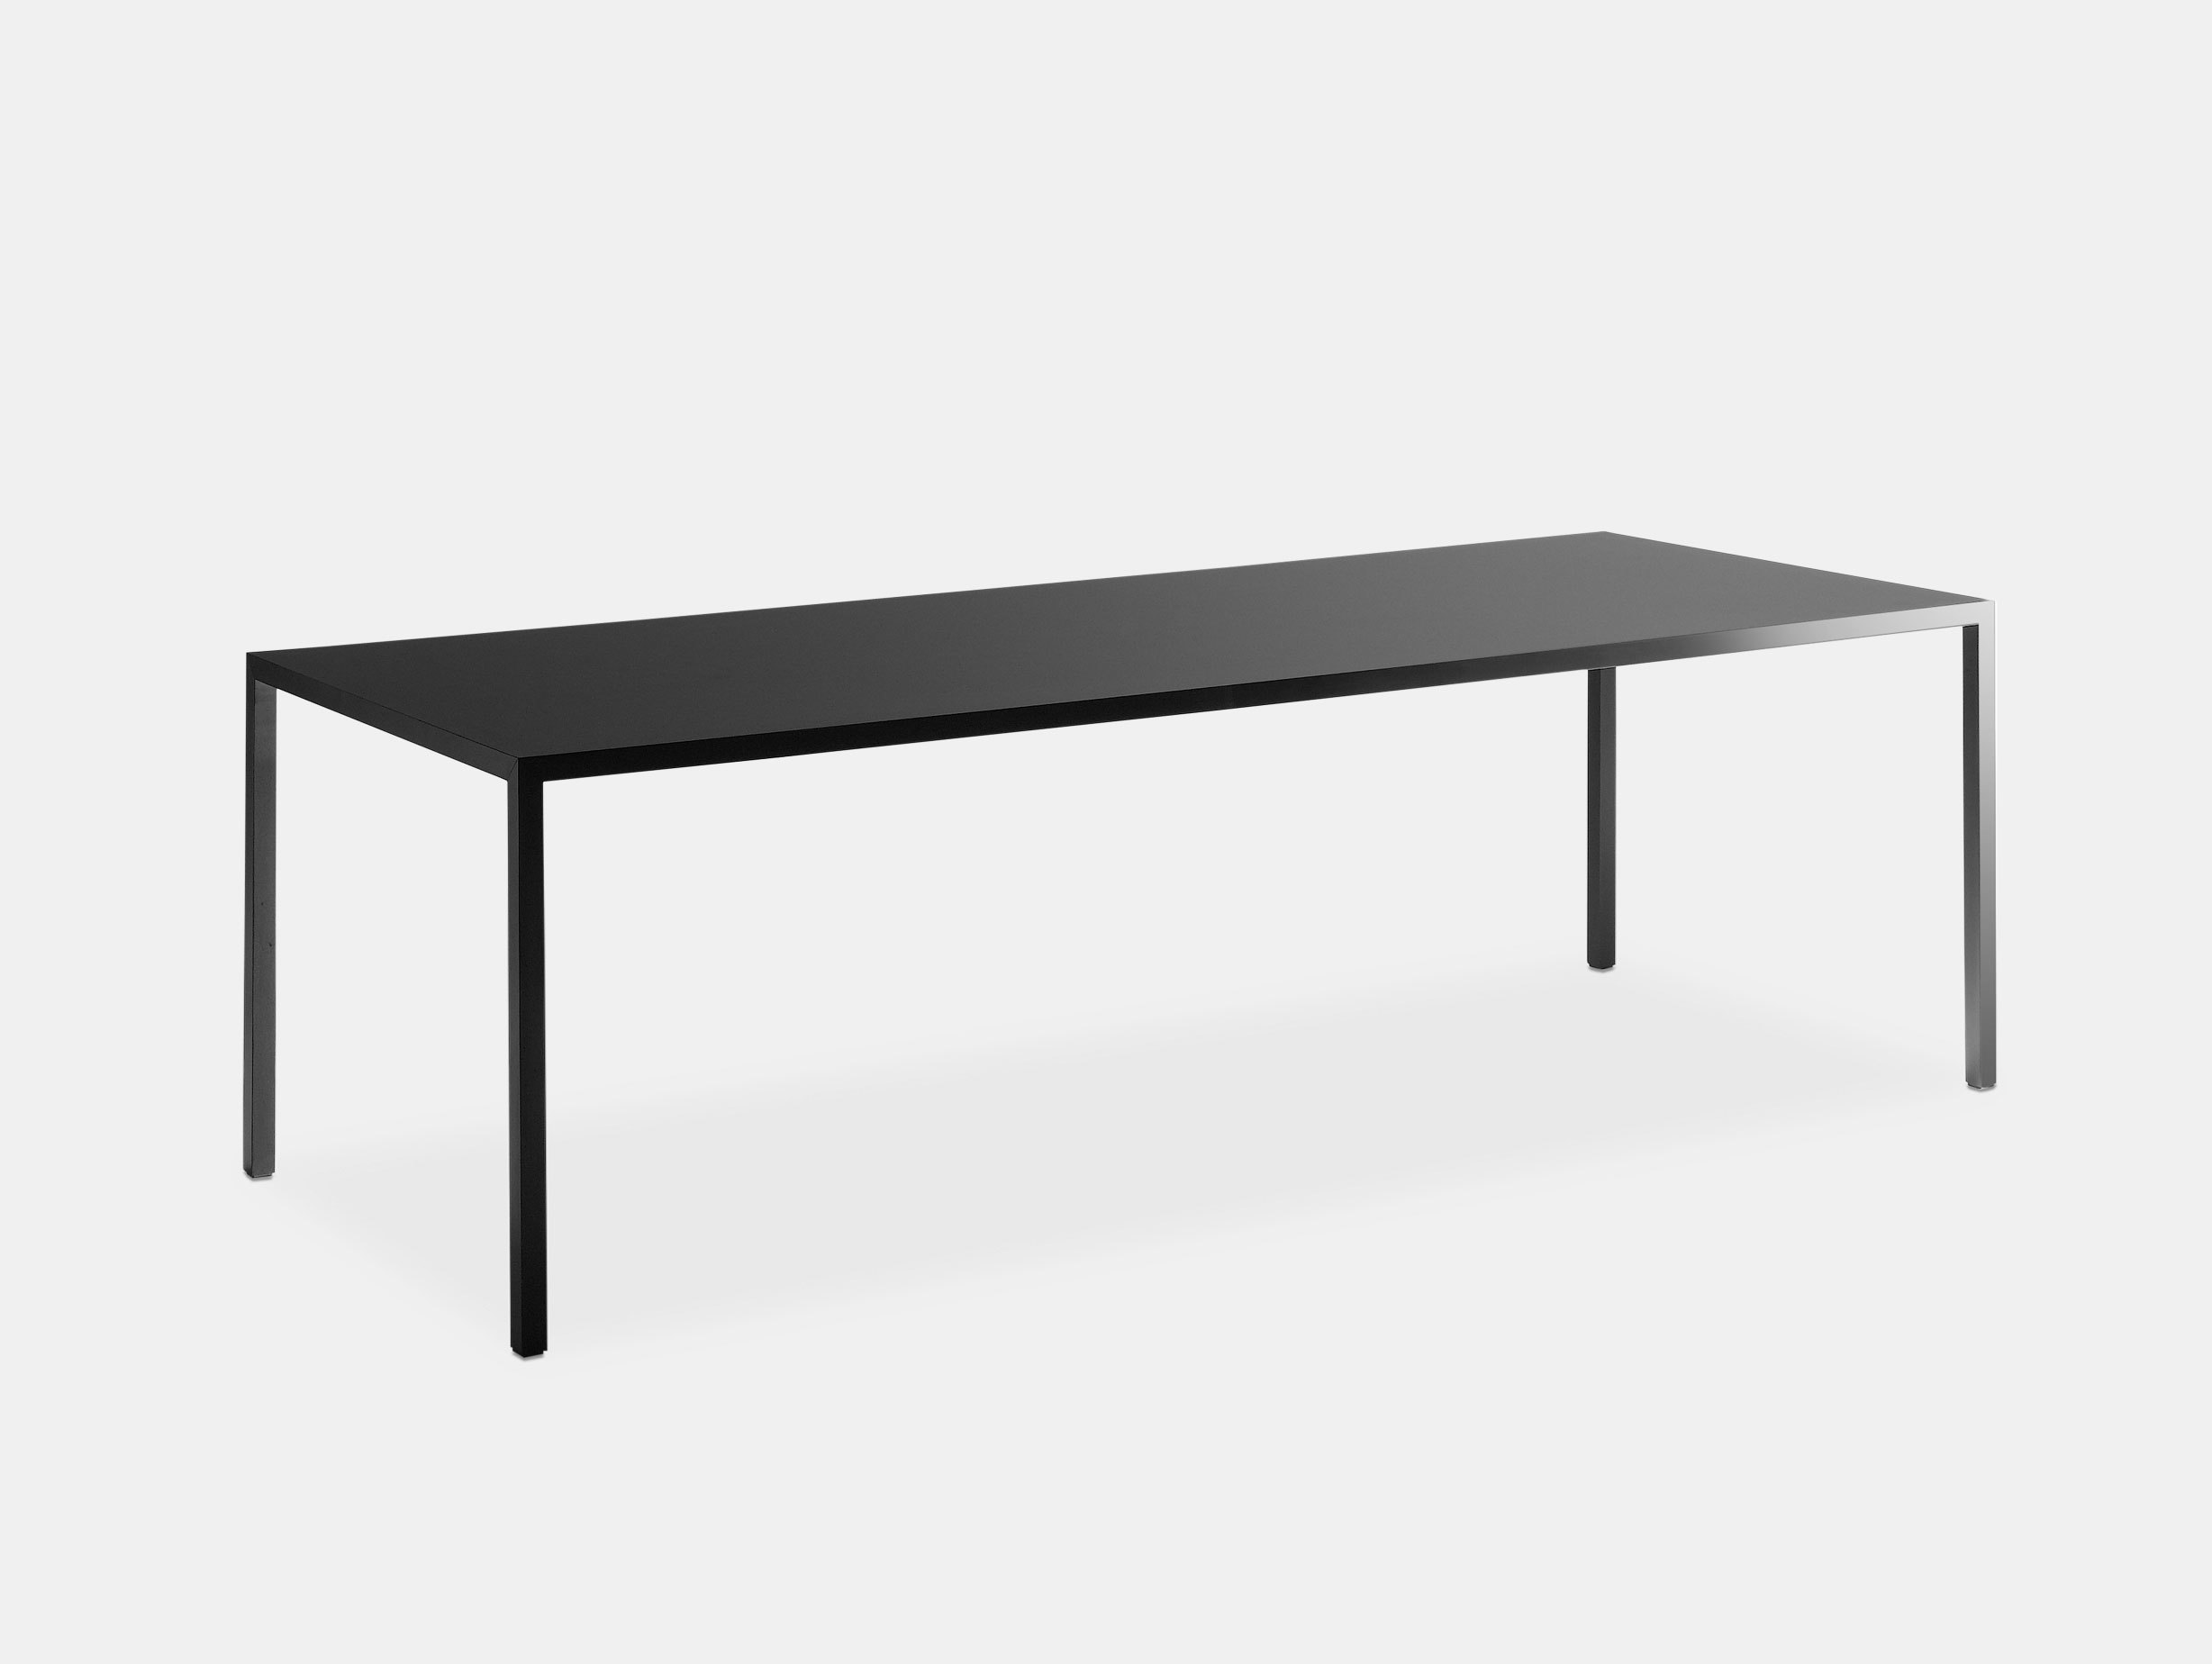 Mdf Italia Tense Table Black Piergiorgio Cazzaniga